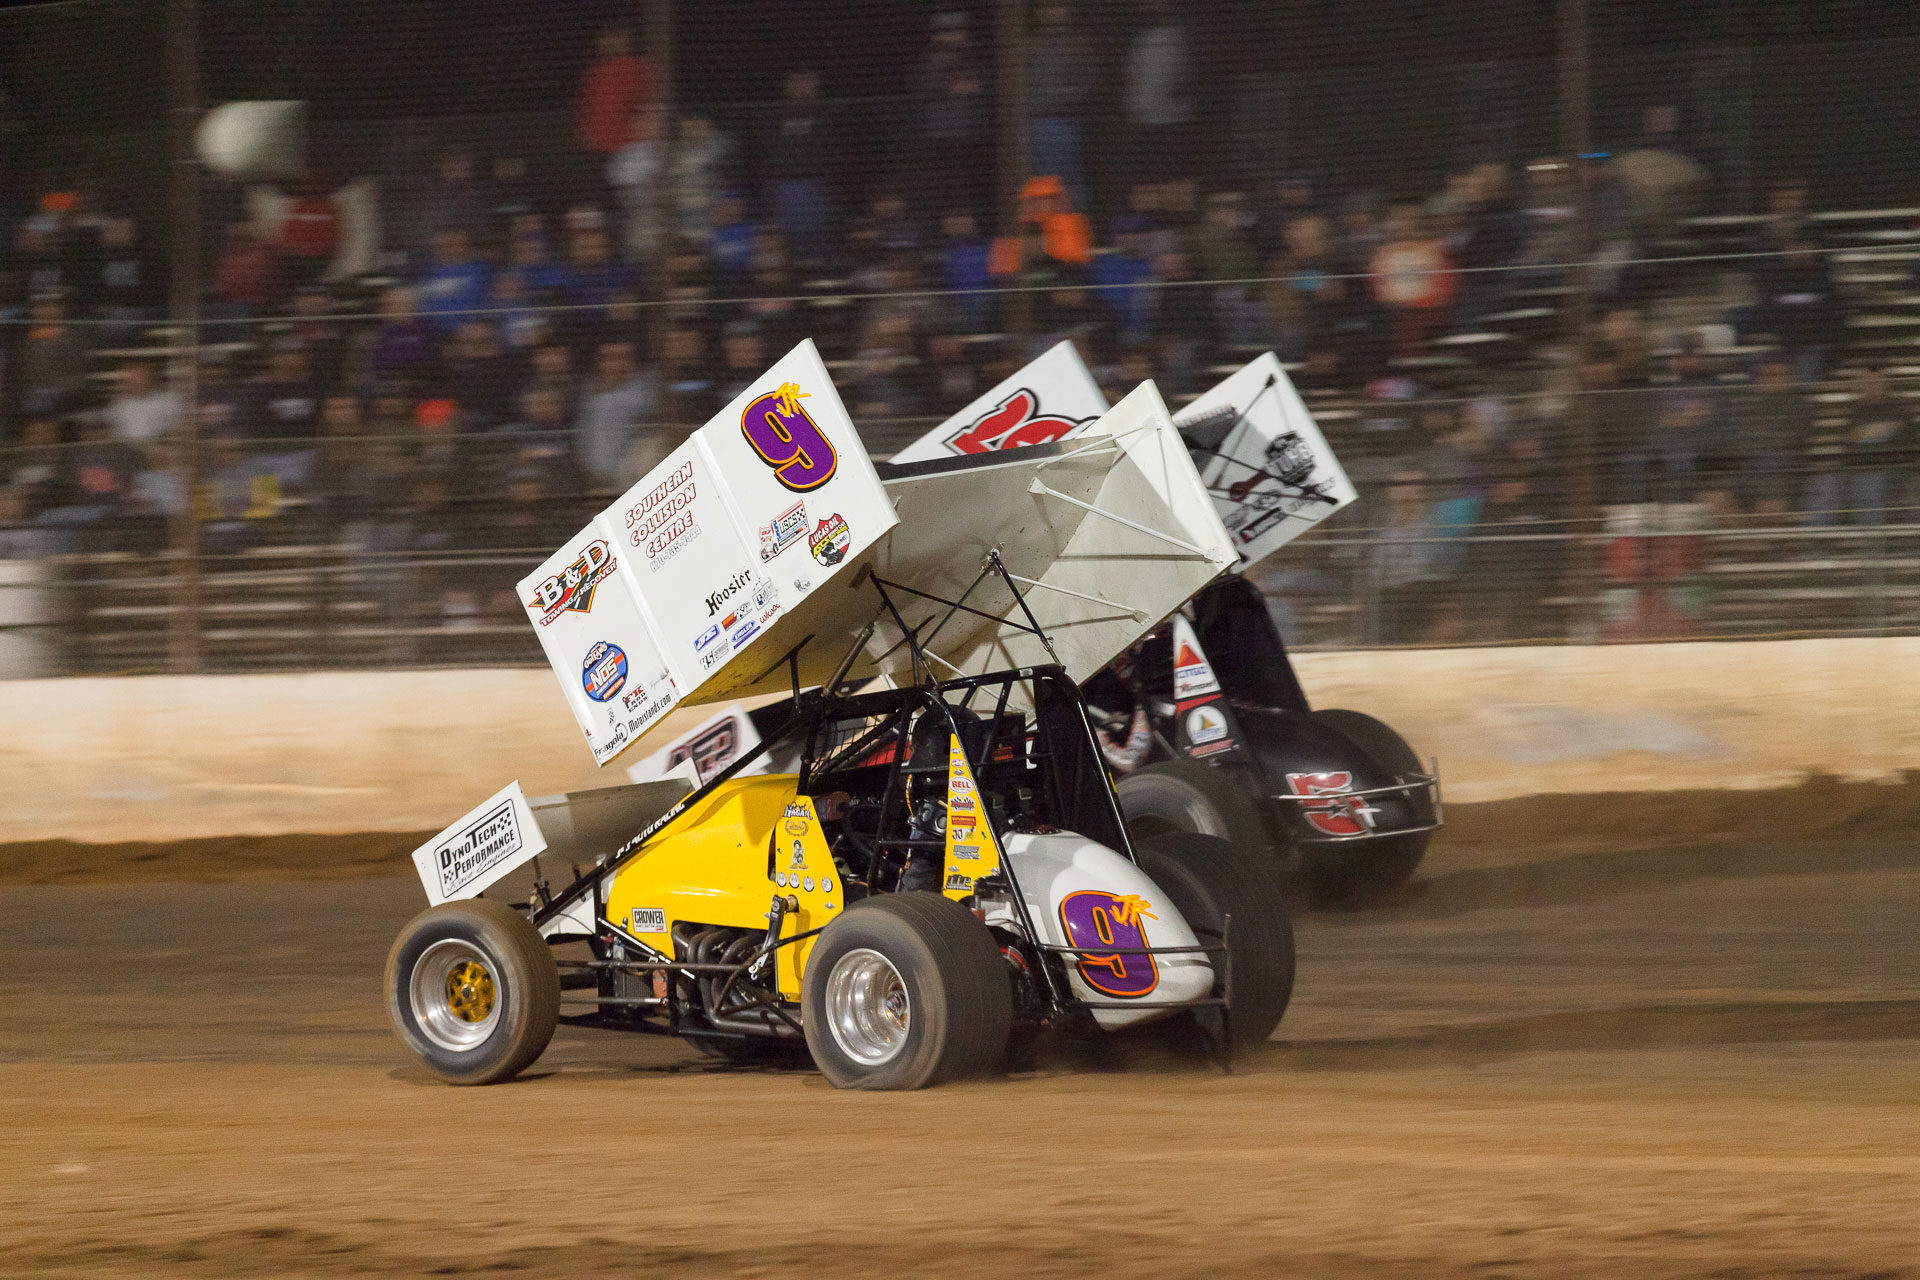 The 5T of Ryan Timms overtakes the 9JR of Derek Hagar going into turn 3 at Lake Ozark Speedway during the ASCS Sprint Car A Feature. (Jeffrey Turford / TDP)